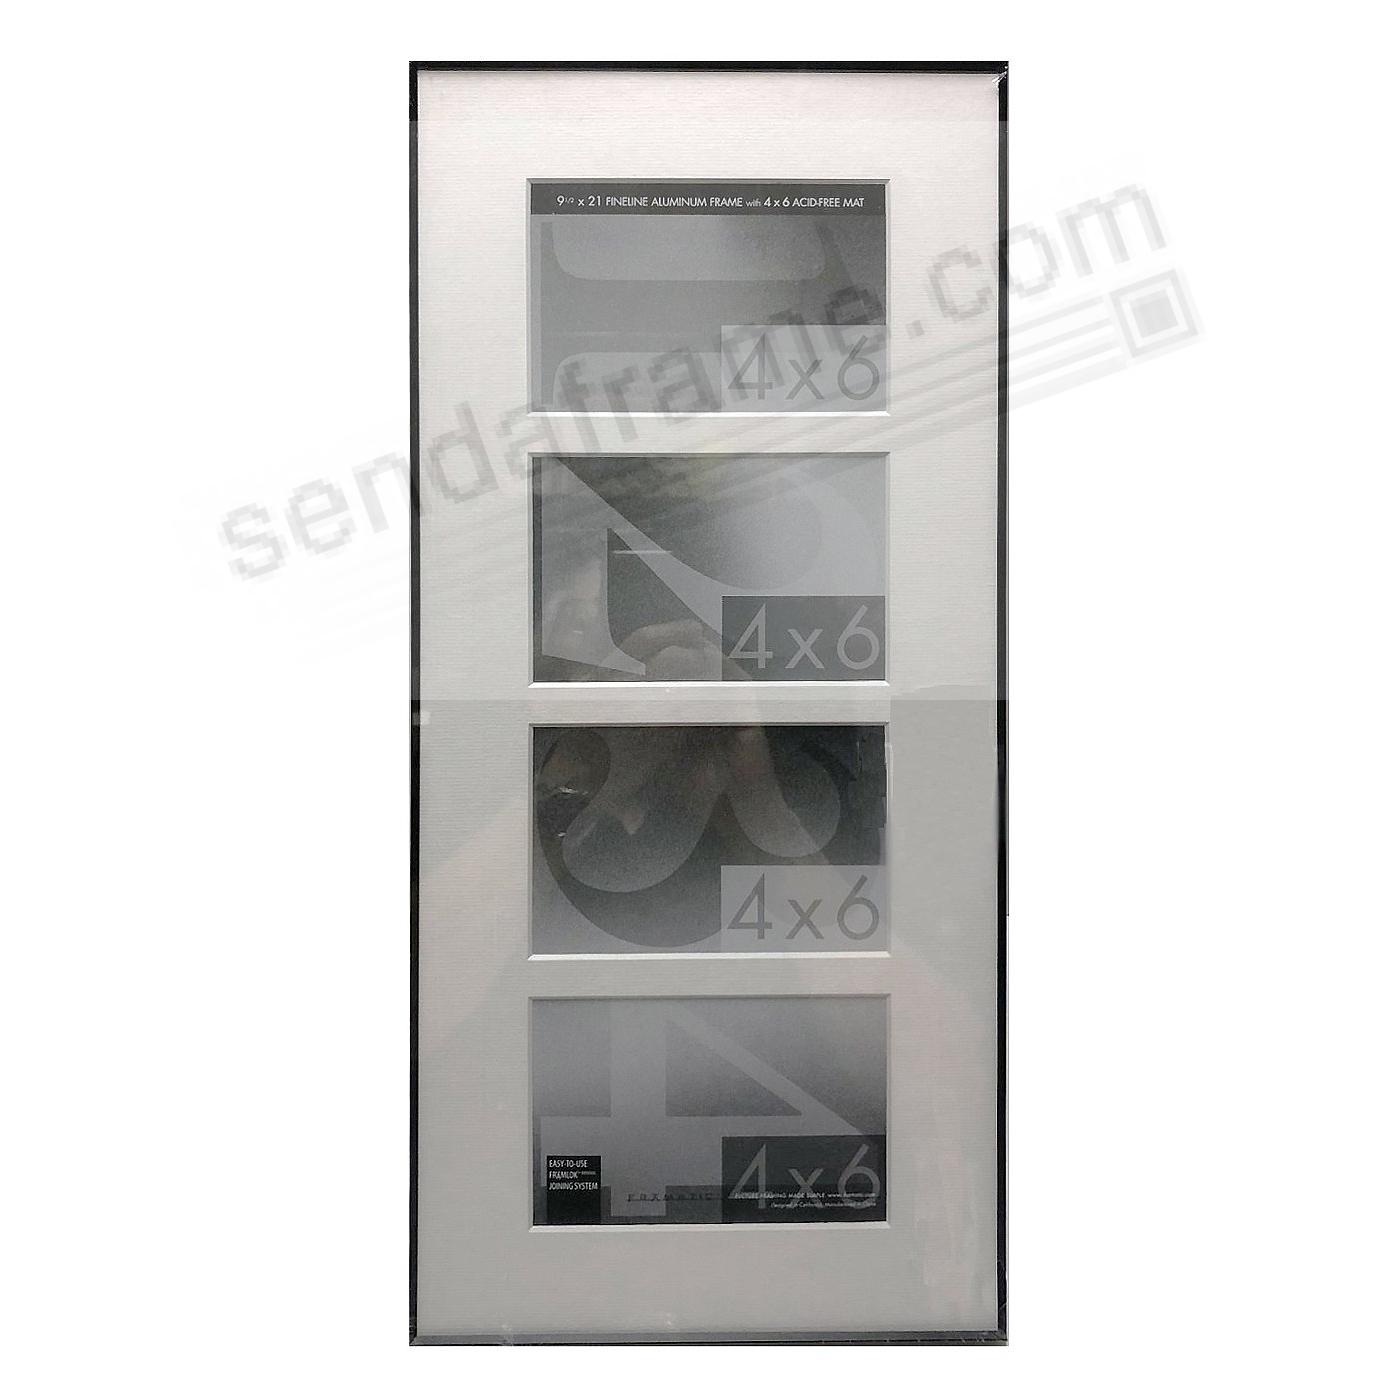 FINELINE Black Aluminum 9.5x21/4x6(4) Matted by Framatic®